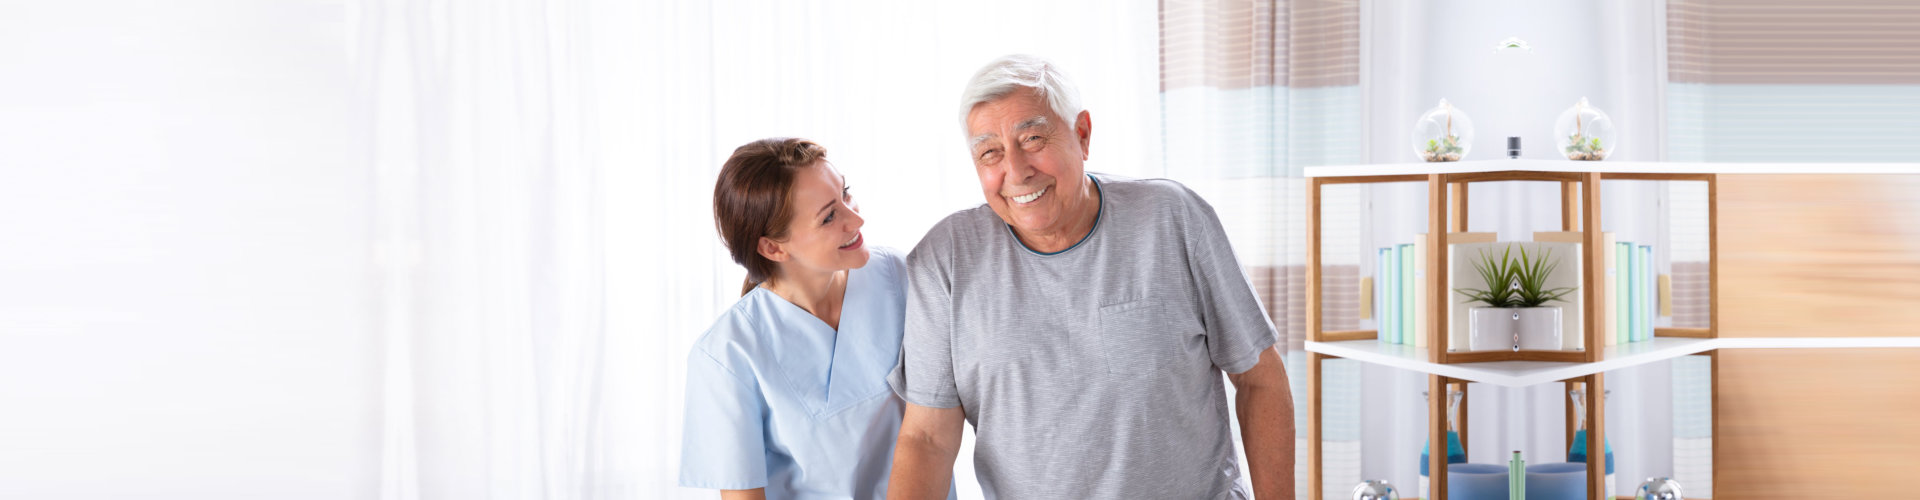 staff and elderly man smiling